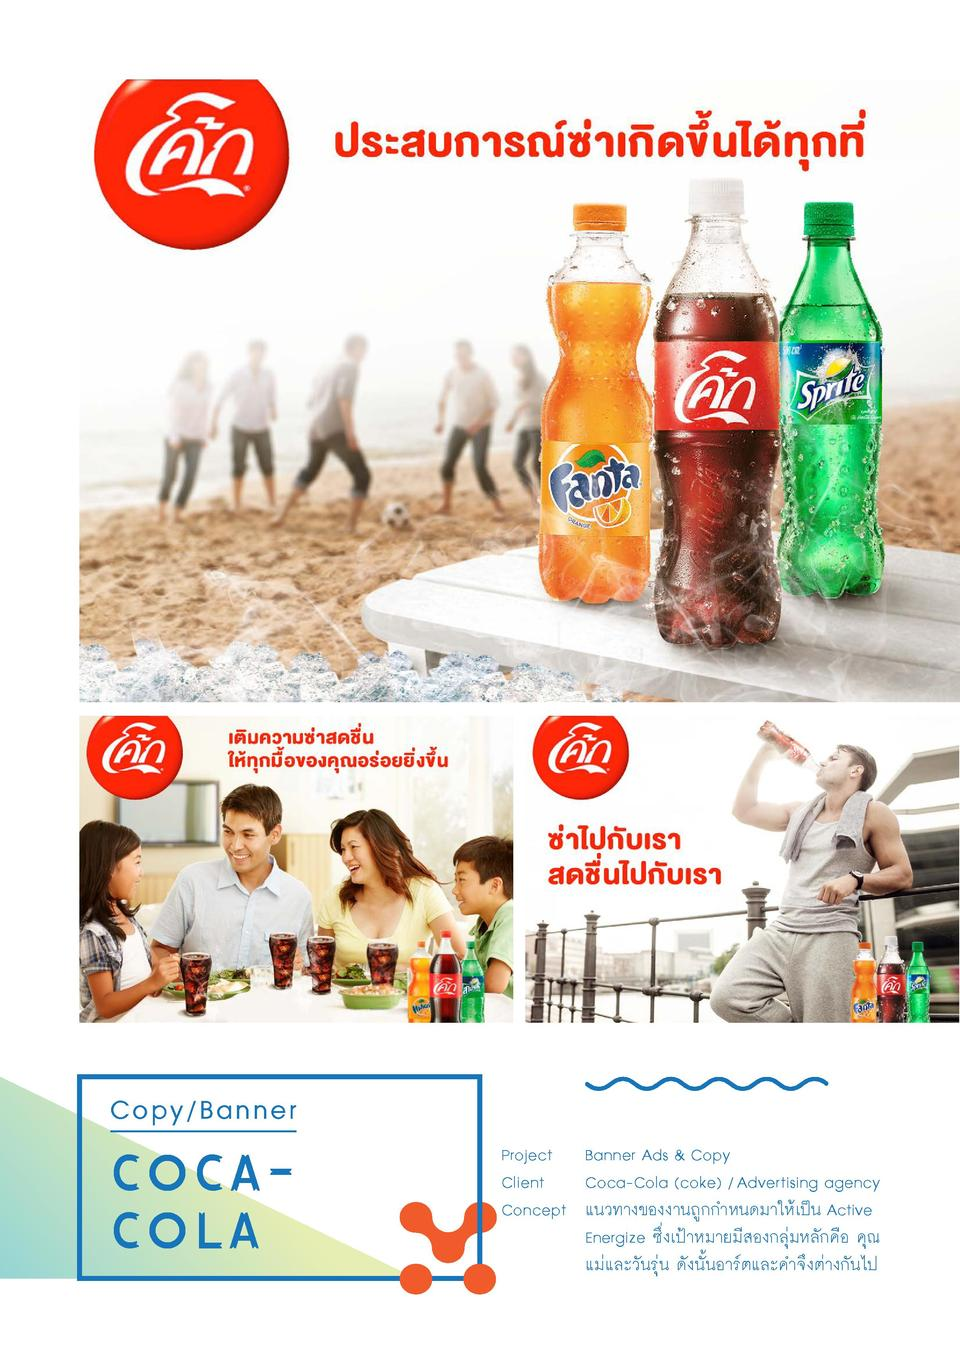 Copy Banner  cocacola  Project Banner Ads   Copy Client Coca-Cola  coke    Advertising agency Concept                     ...